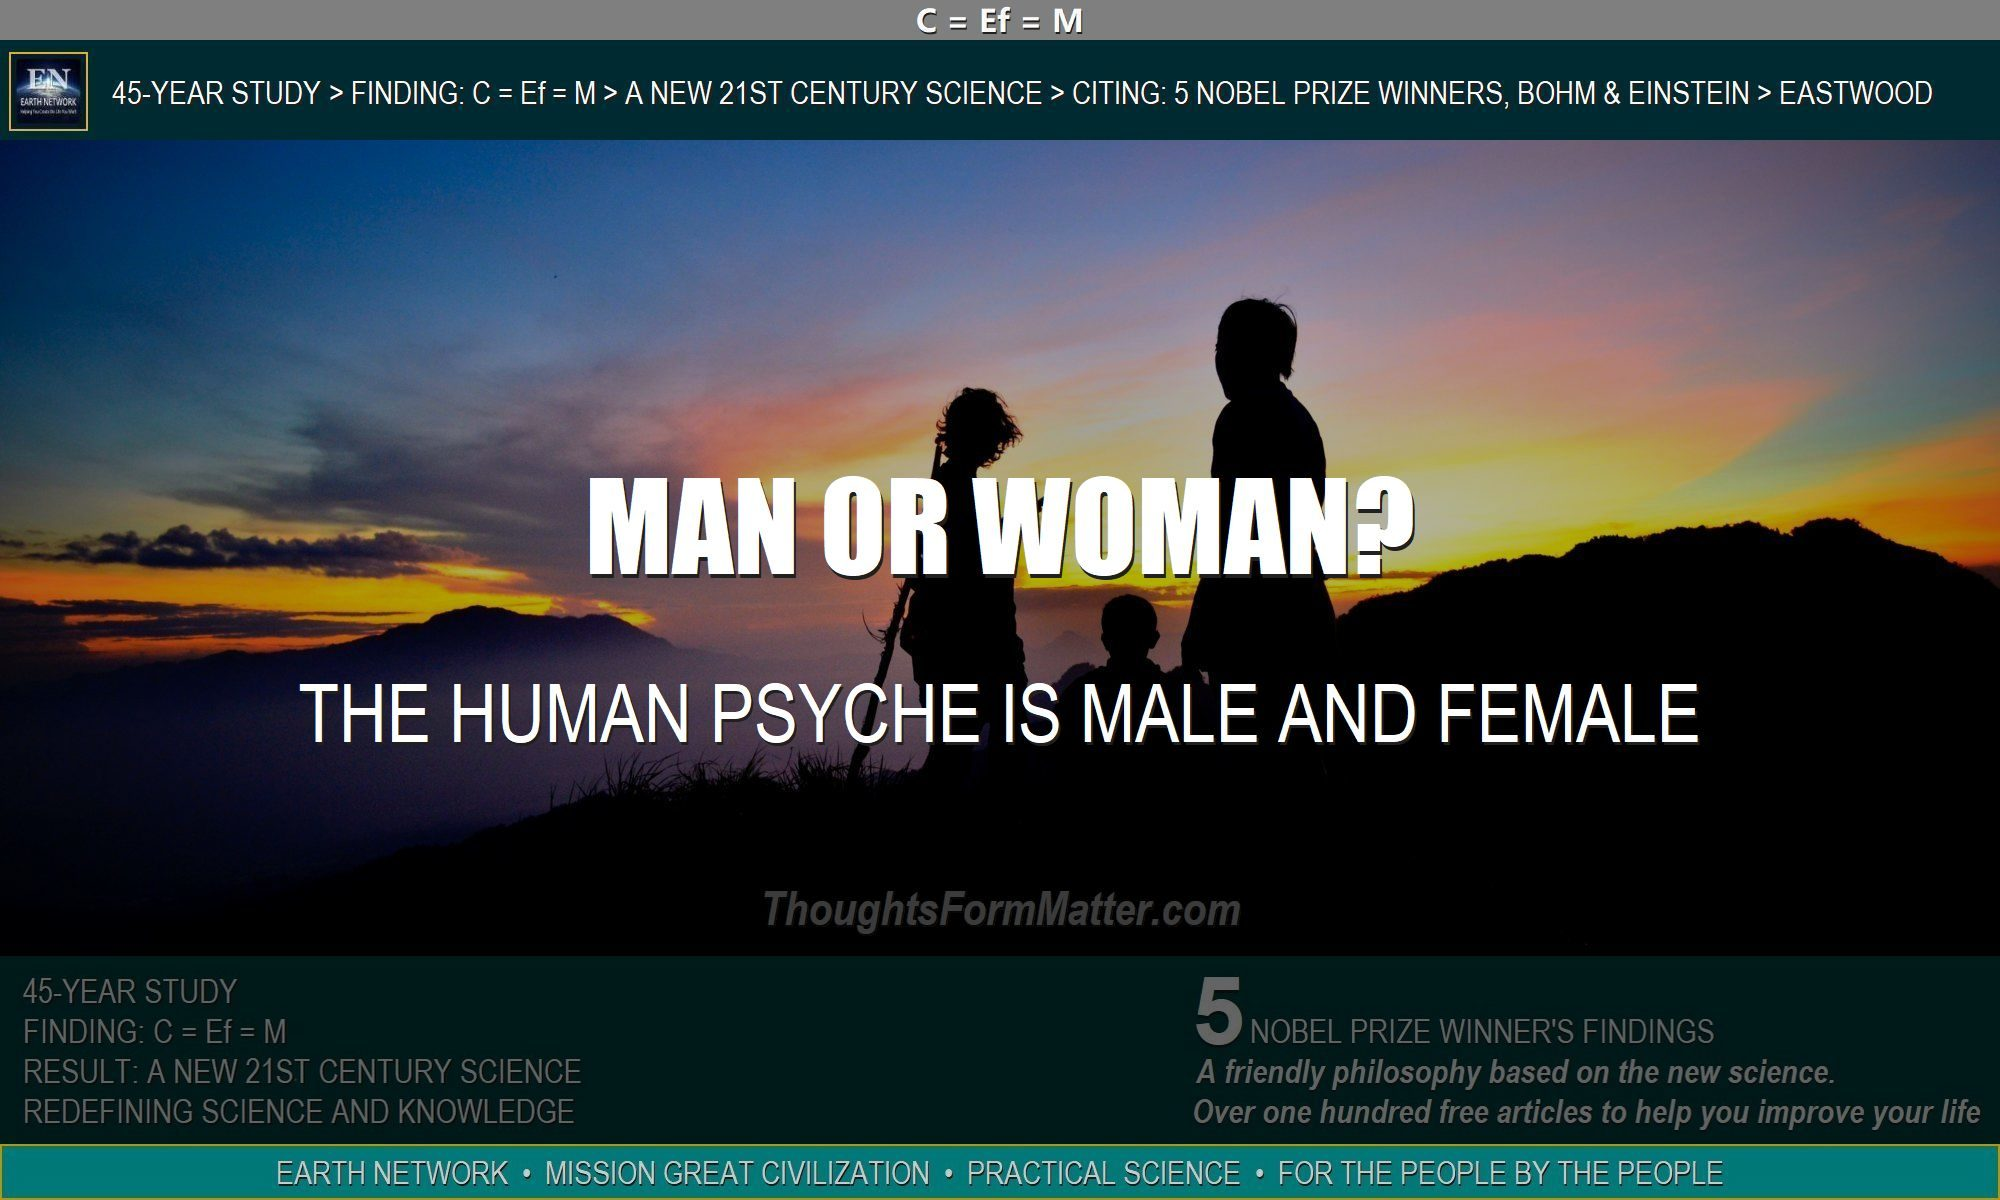 Family depicts human psyche boys like girls and men like women.